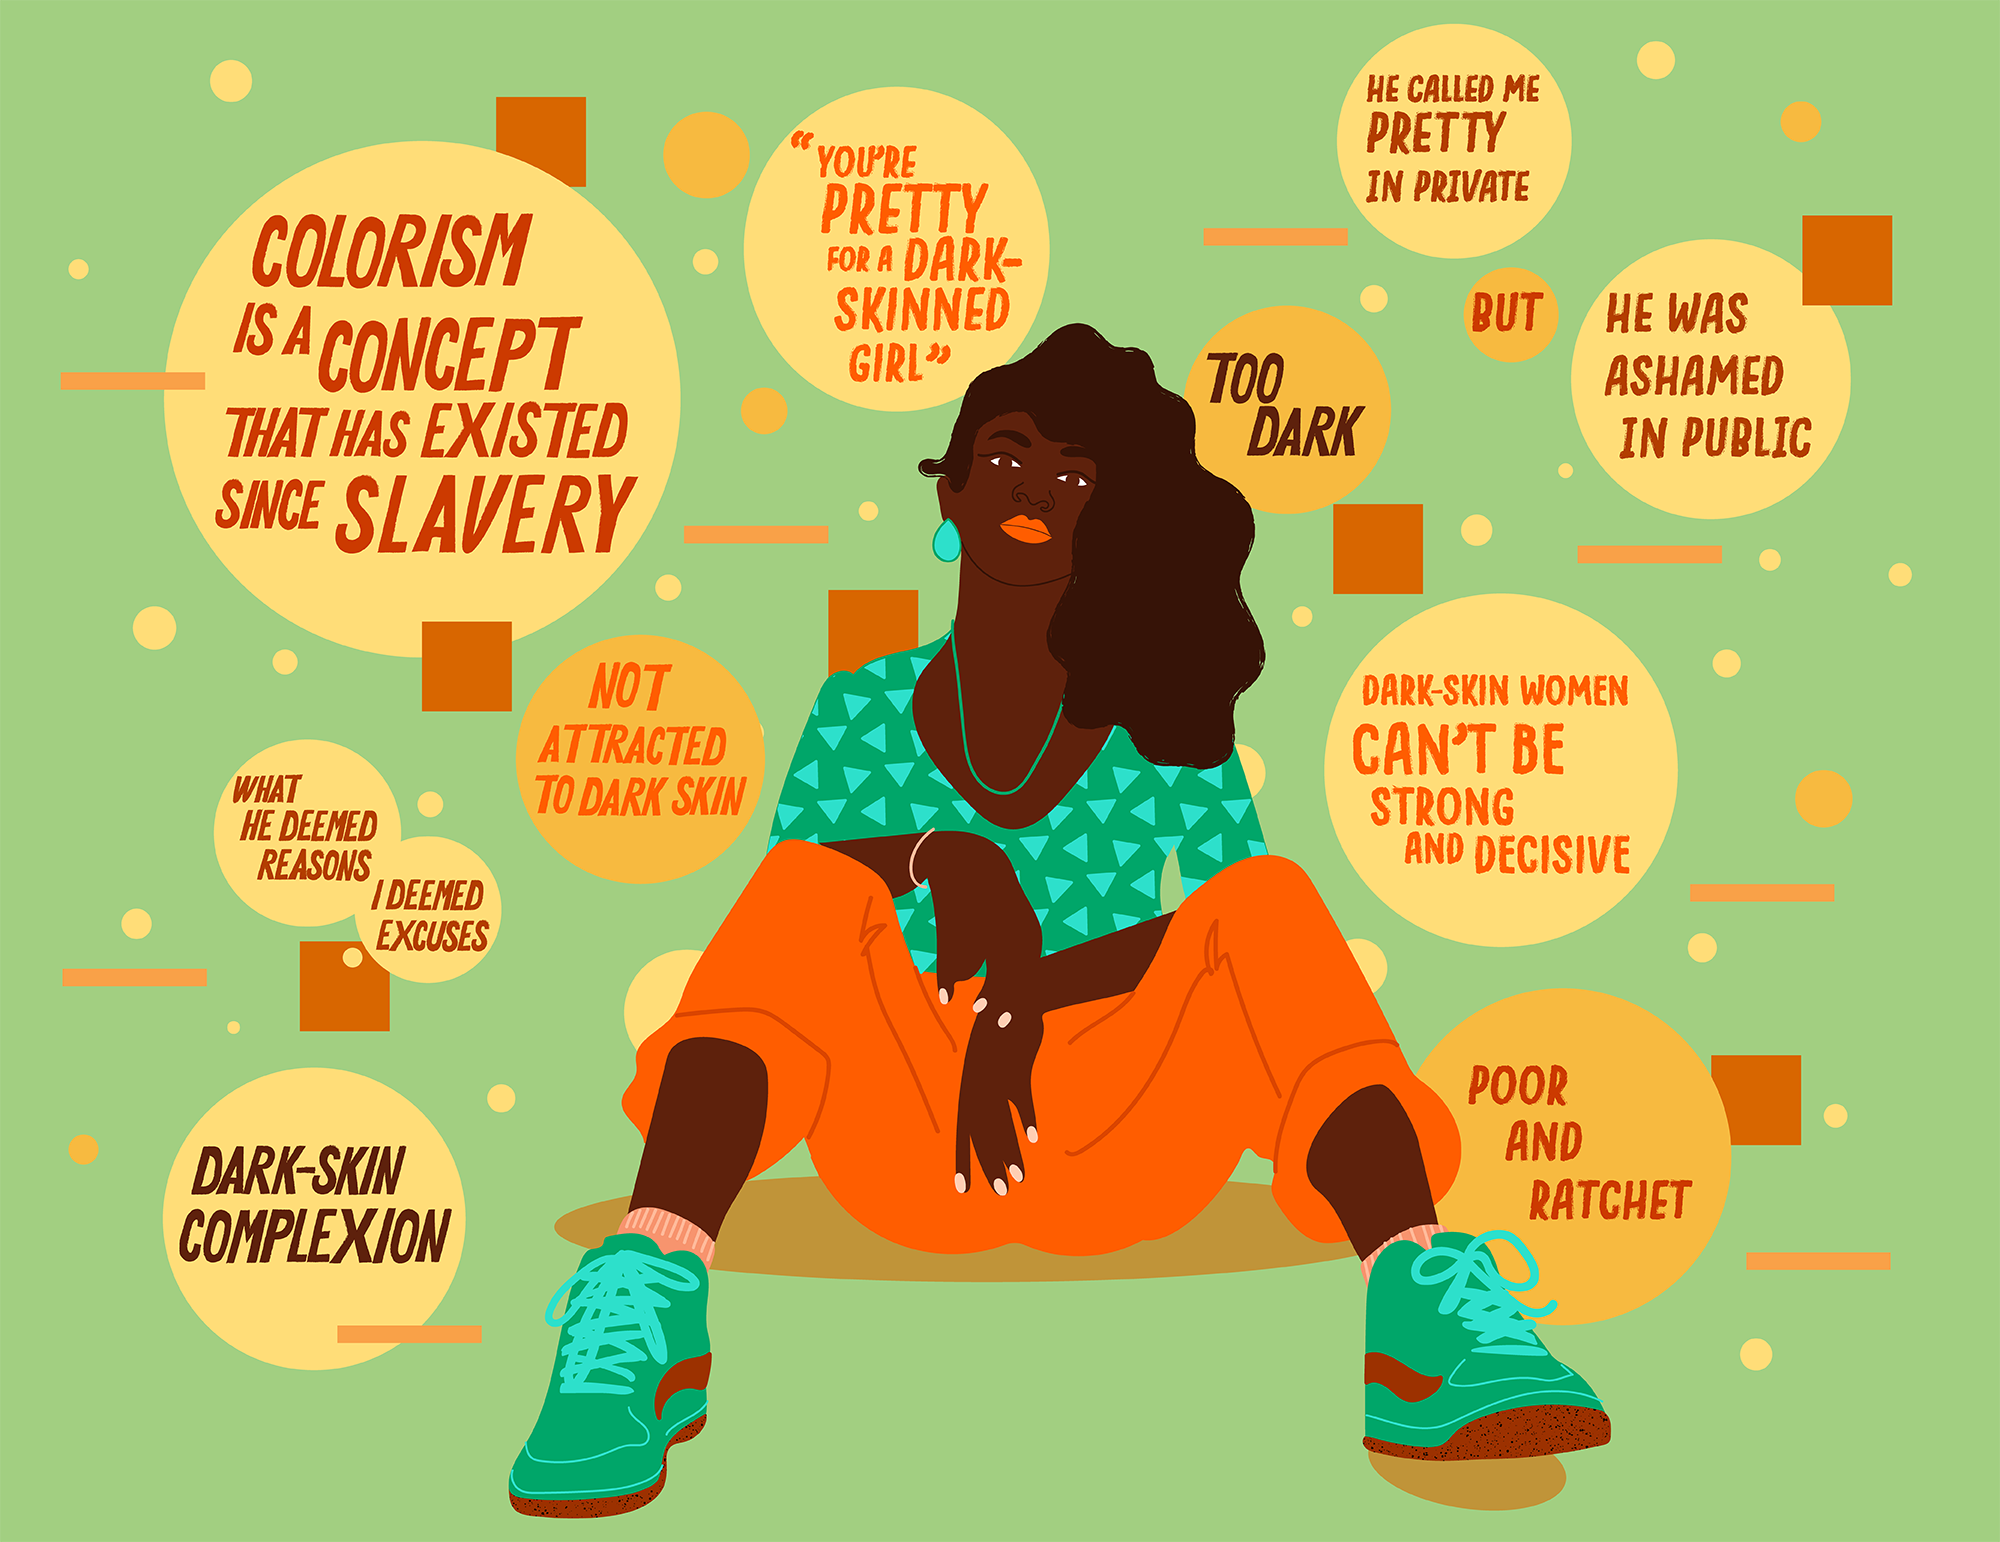 Dating as a black woman means dealing with colorism-01.png